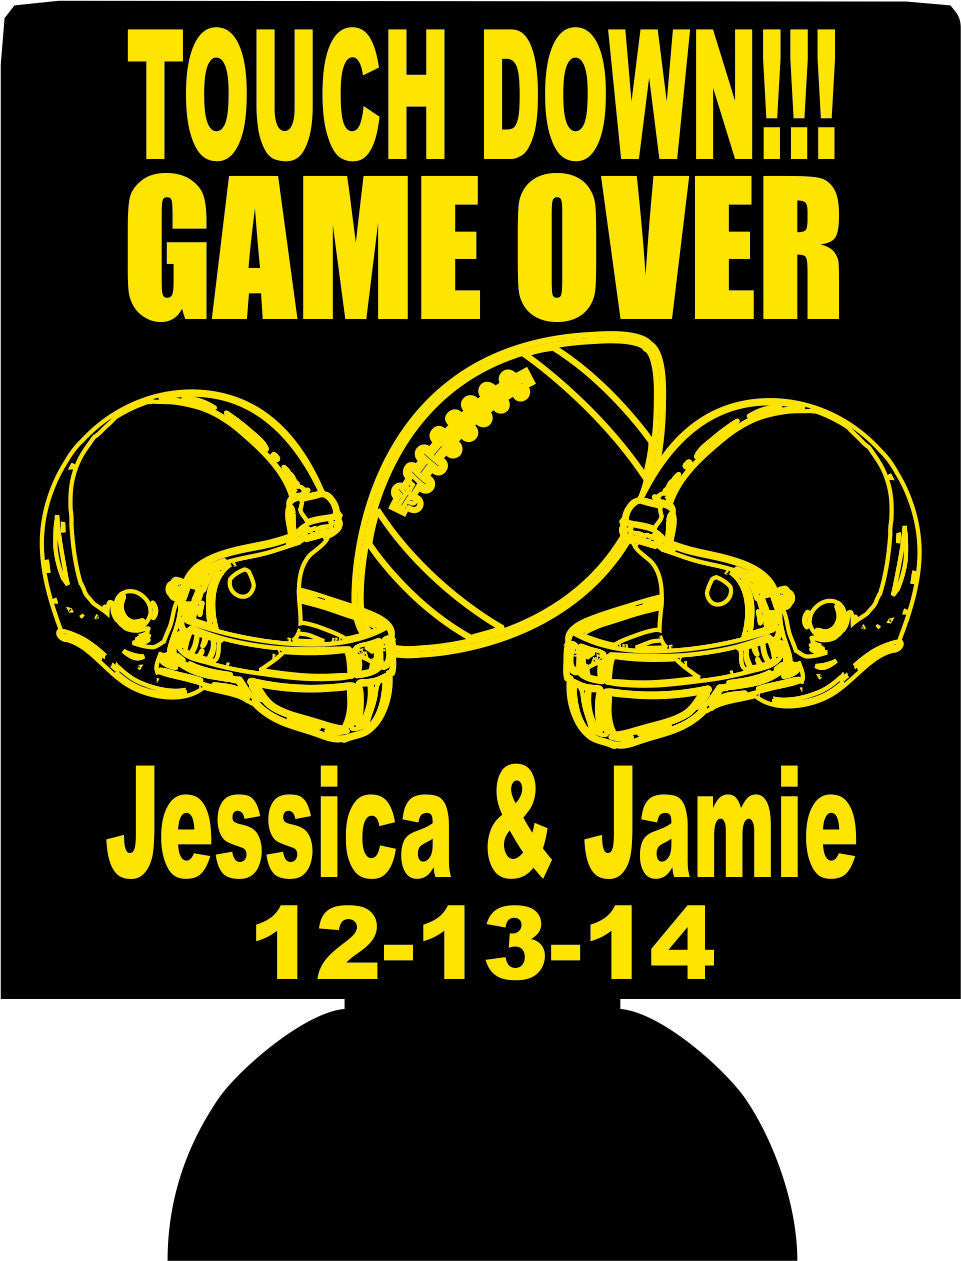 Game over Football Wedding koozie custom favors